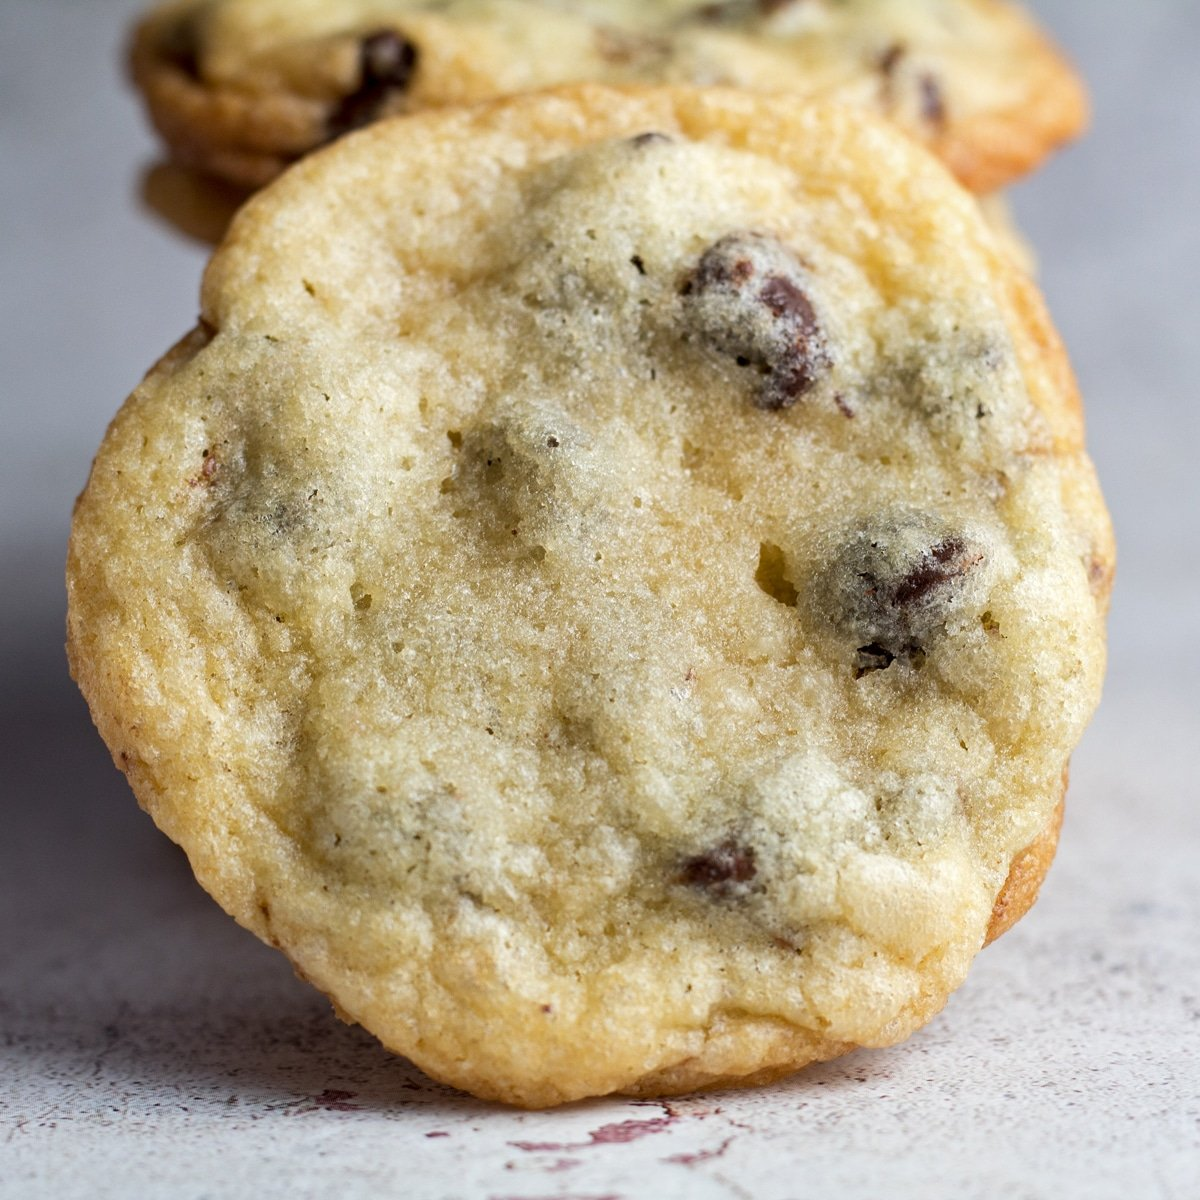 Large square image of arranged chocolate chip cookies without brown sugar.